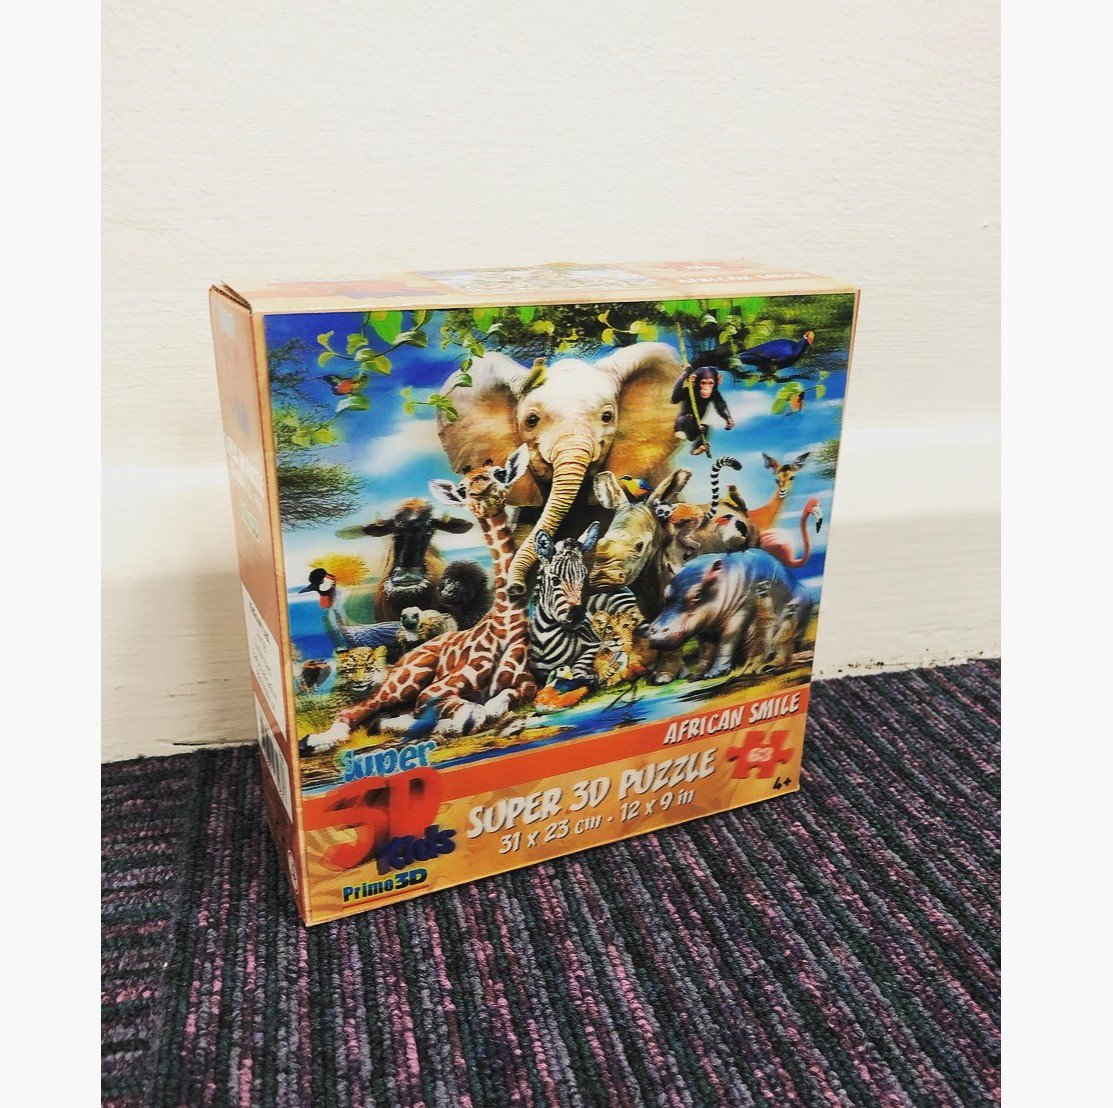 It&#39;s Friday which means... COMPETITION TIME! This week we are giving away an African Smile 3D Puzzle!  RT &amp; Follow @SalveoUK to #WIN! Competition ends 23/05 23:59  #Puzzle #Animals #Africa #TGIF #FreebieFriday #WinnerWinner  <br>http://pic.twitter.com/4iXBRC6mTn